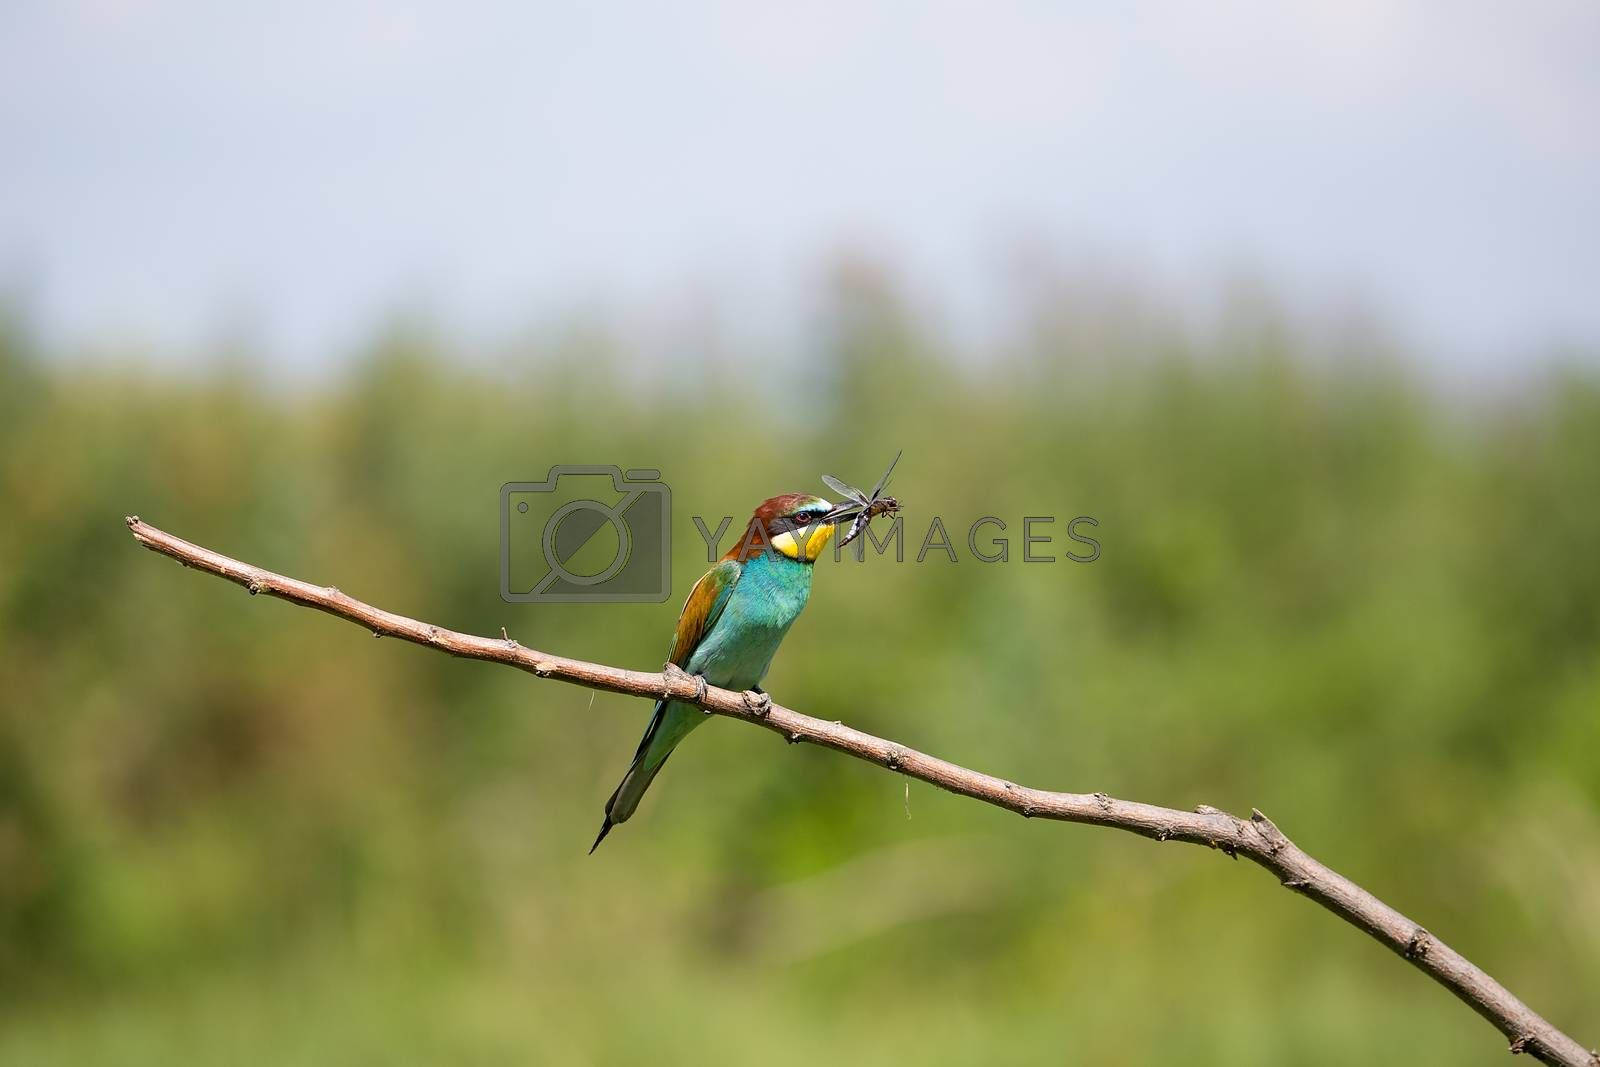 European Bee-eater (Merops apiaster) playing with insect - dragonfly on brunch - tropical colours bird, Isola della Cona, Monfalcone, Italy, Europe